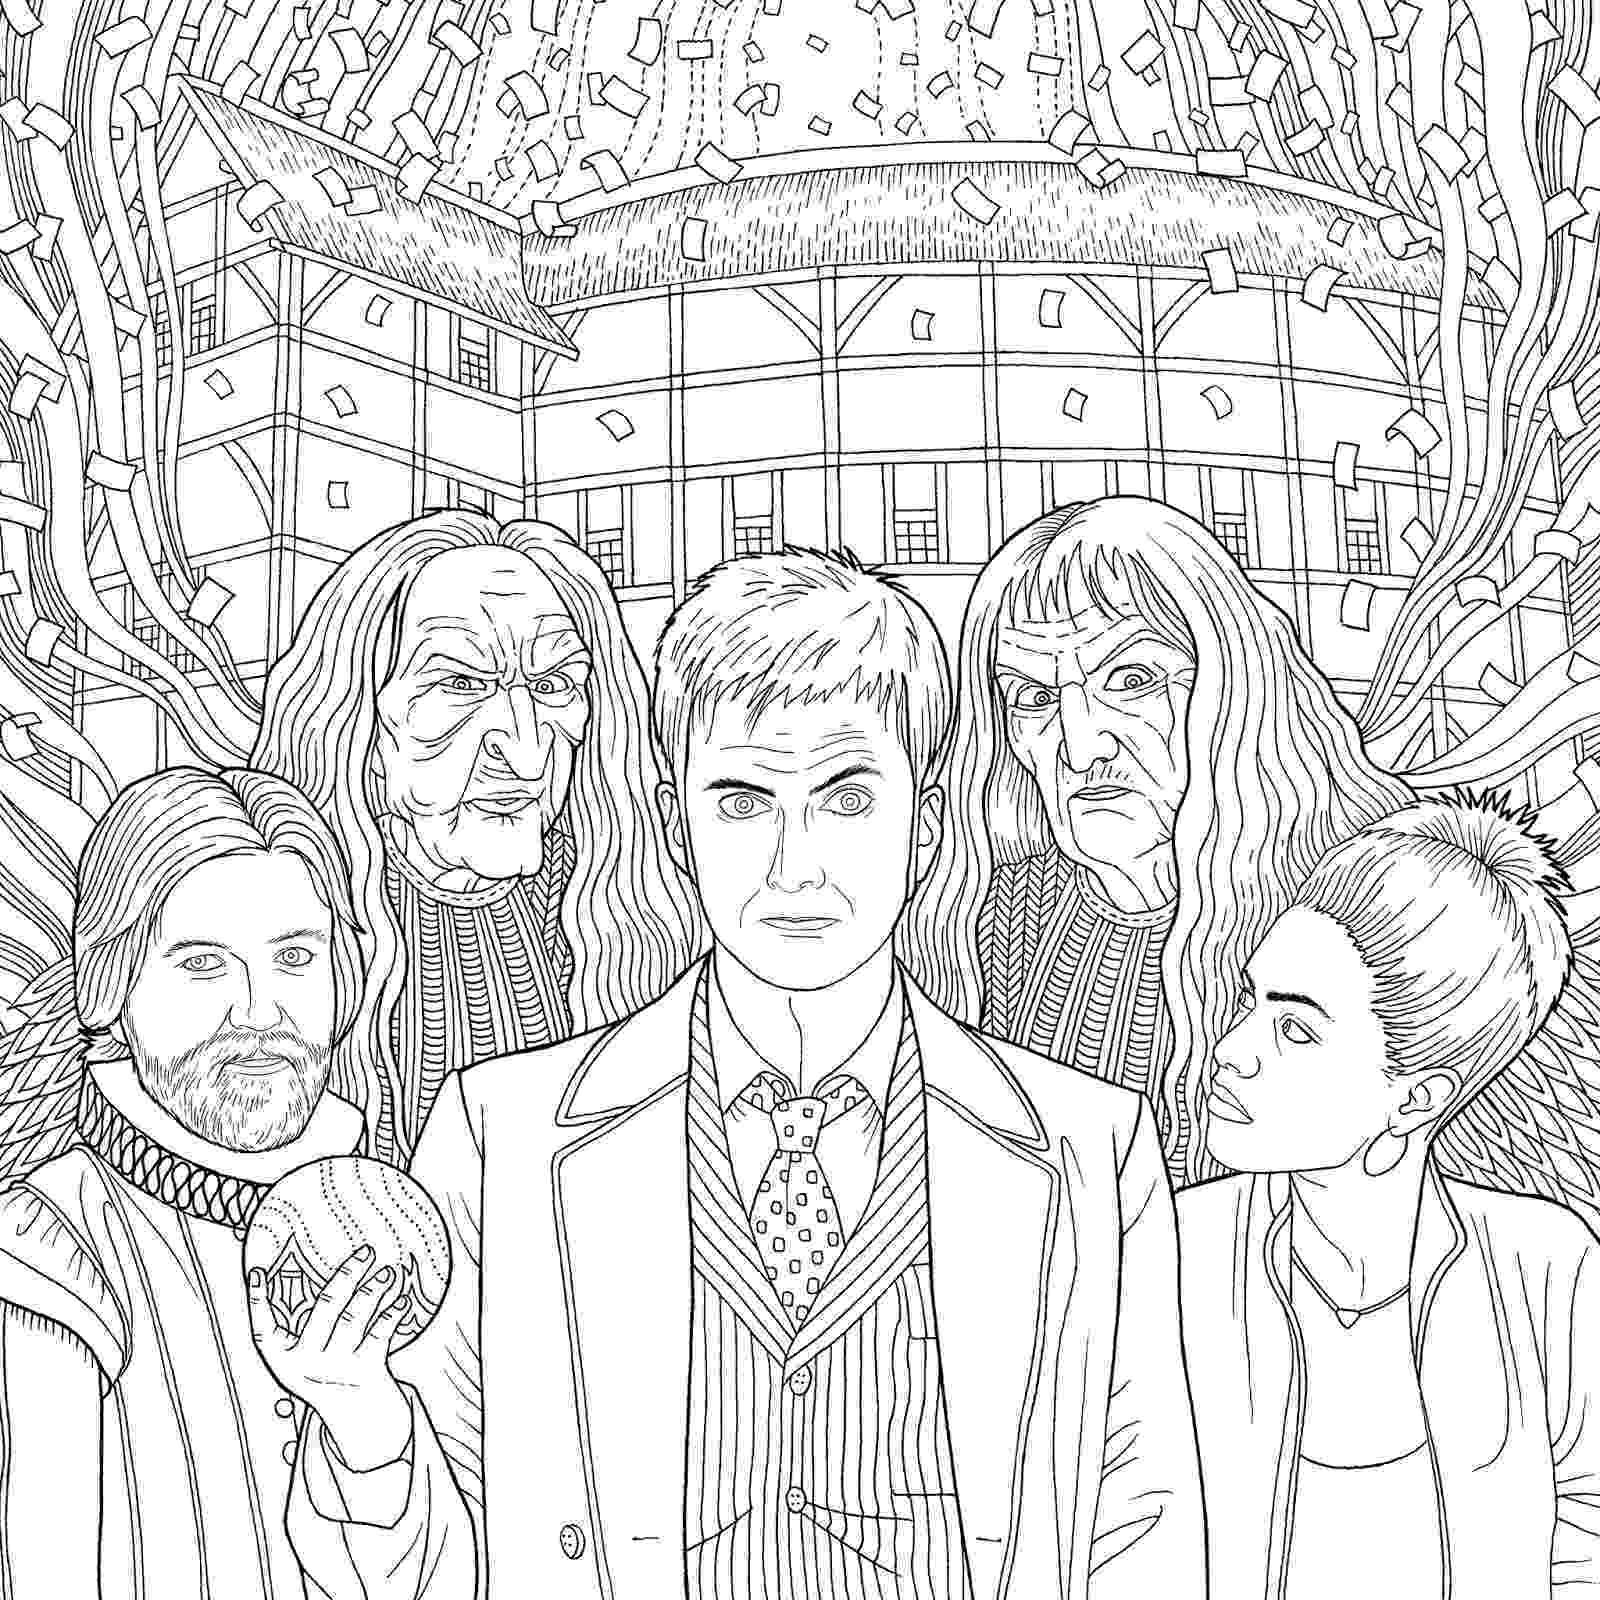 tardis colouring pages new doctor who travels in time colouring book released pages colouring tardis